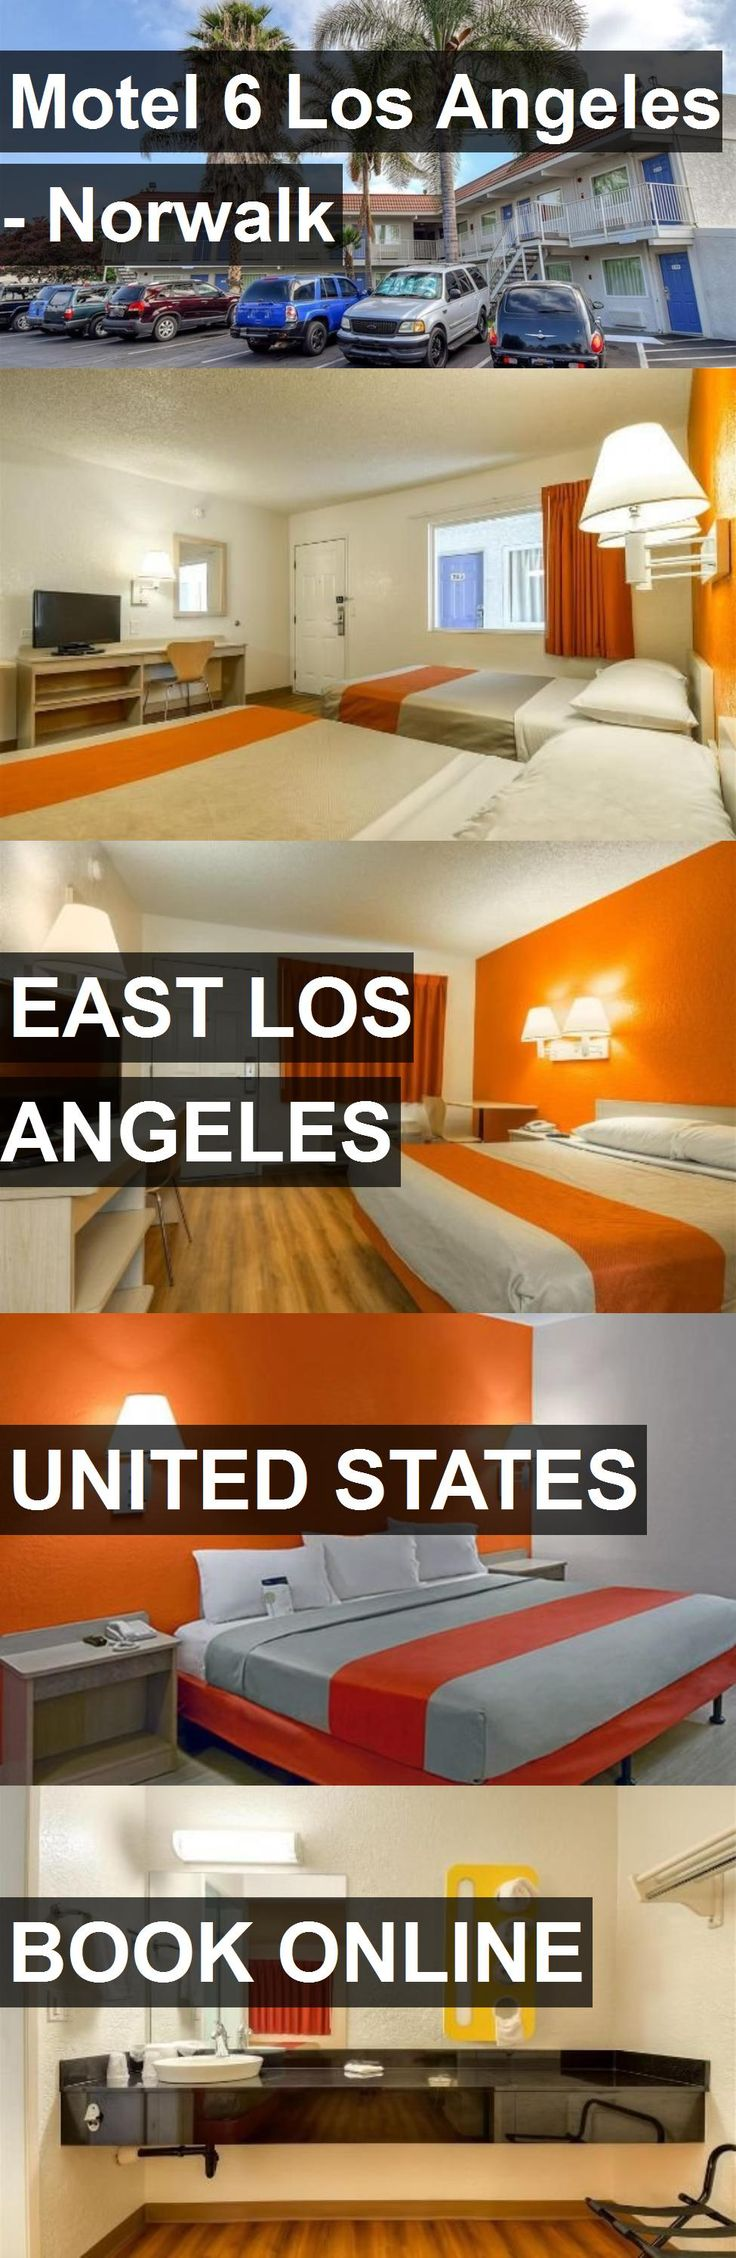 Best 25 motels in los angeles ideas on pinterest motel los hotel motel 6 los angeles norwalk in east los angeles united states for aiddatafo Gallery